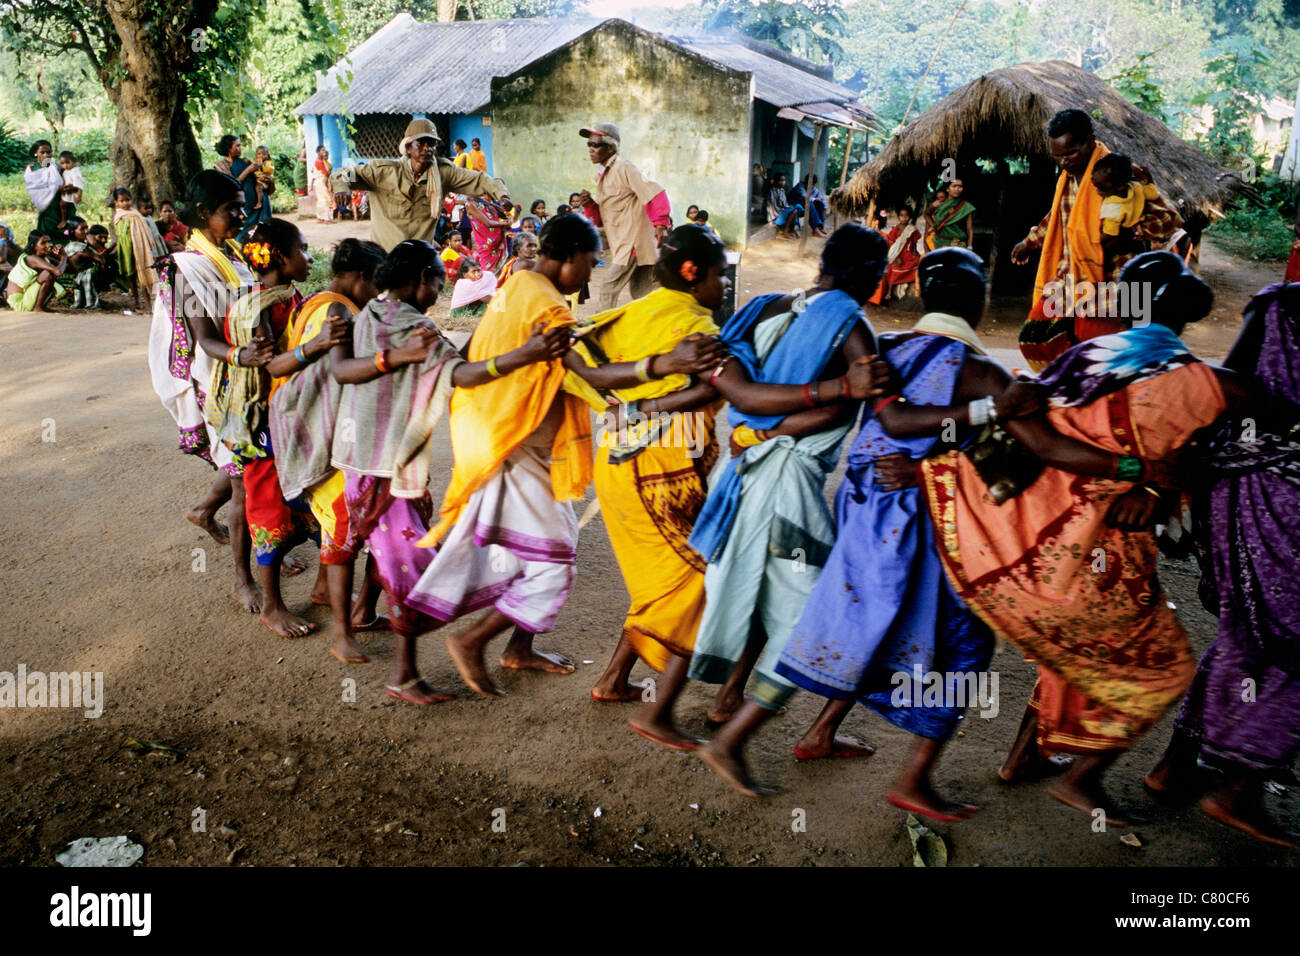 India, Orissa, village dance - Stock Image